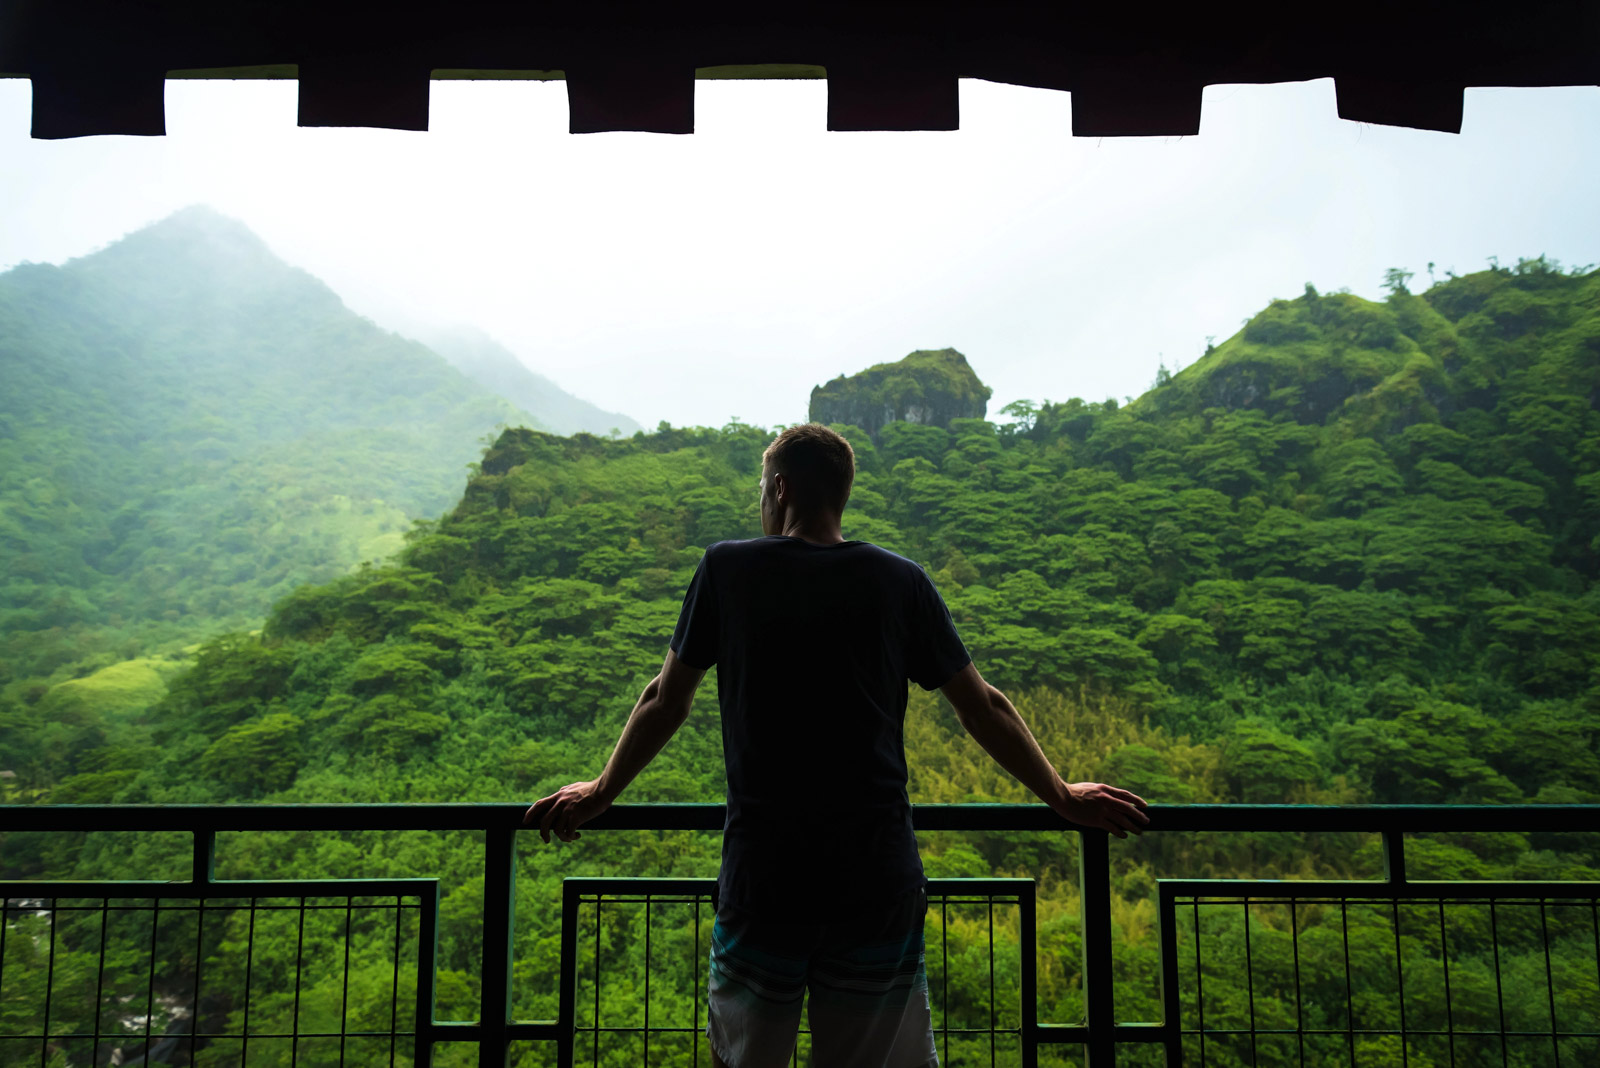 Mara'a Grotto West Coast, Tahiti's Best Nature Spots | Natural Springs, Volcanic Valleys ...